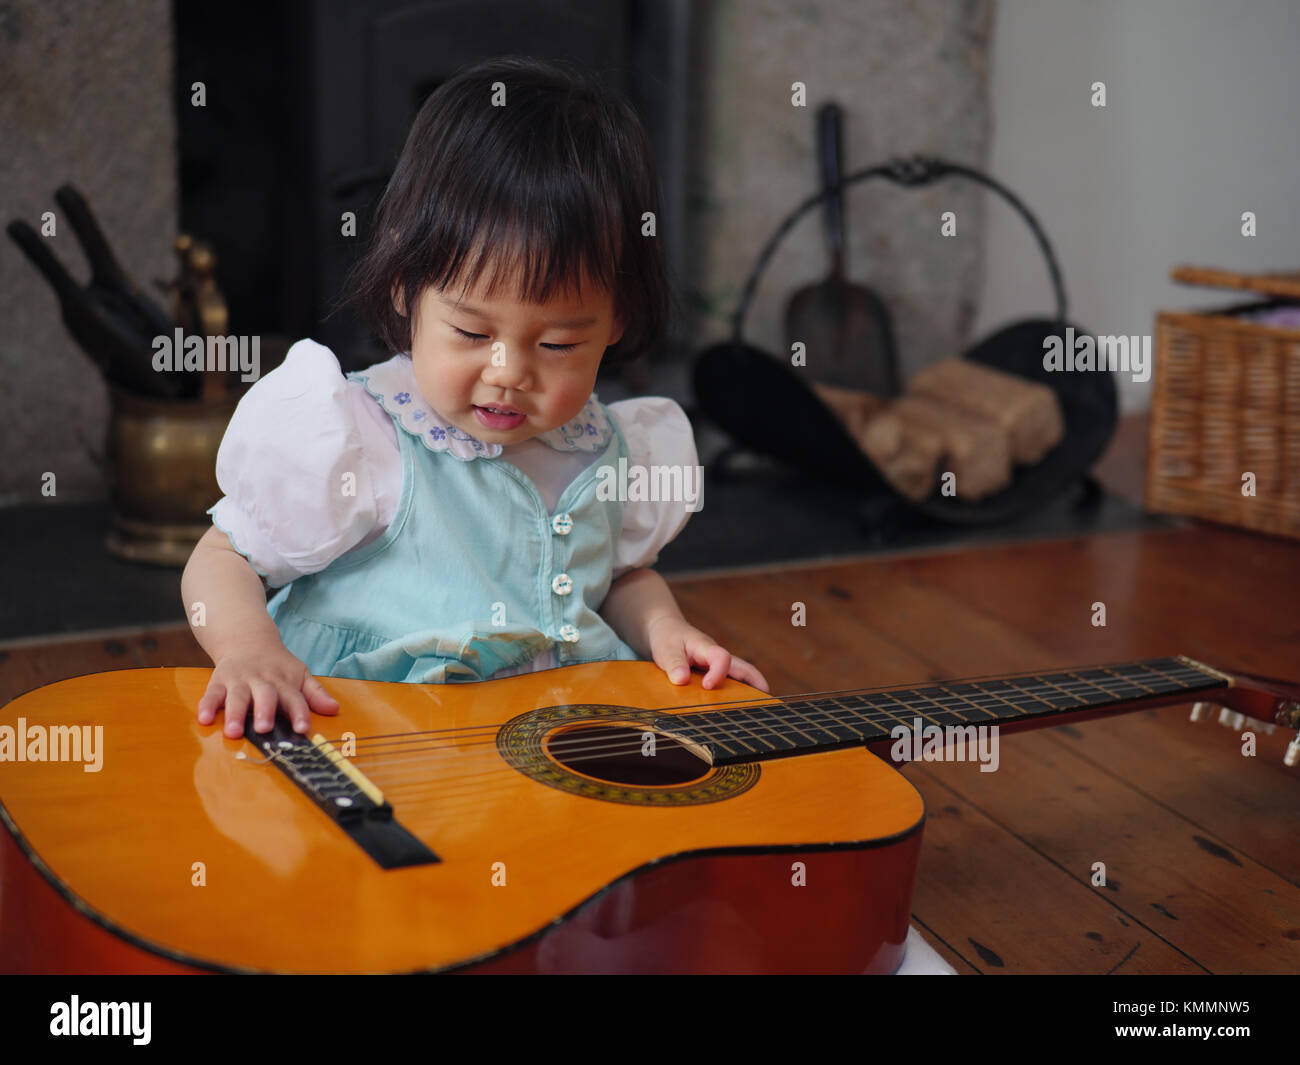 baby girl play guitar at home Stock Photo: 167642641 - Alamy